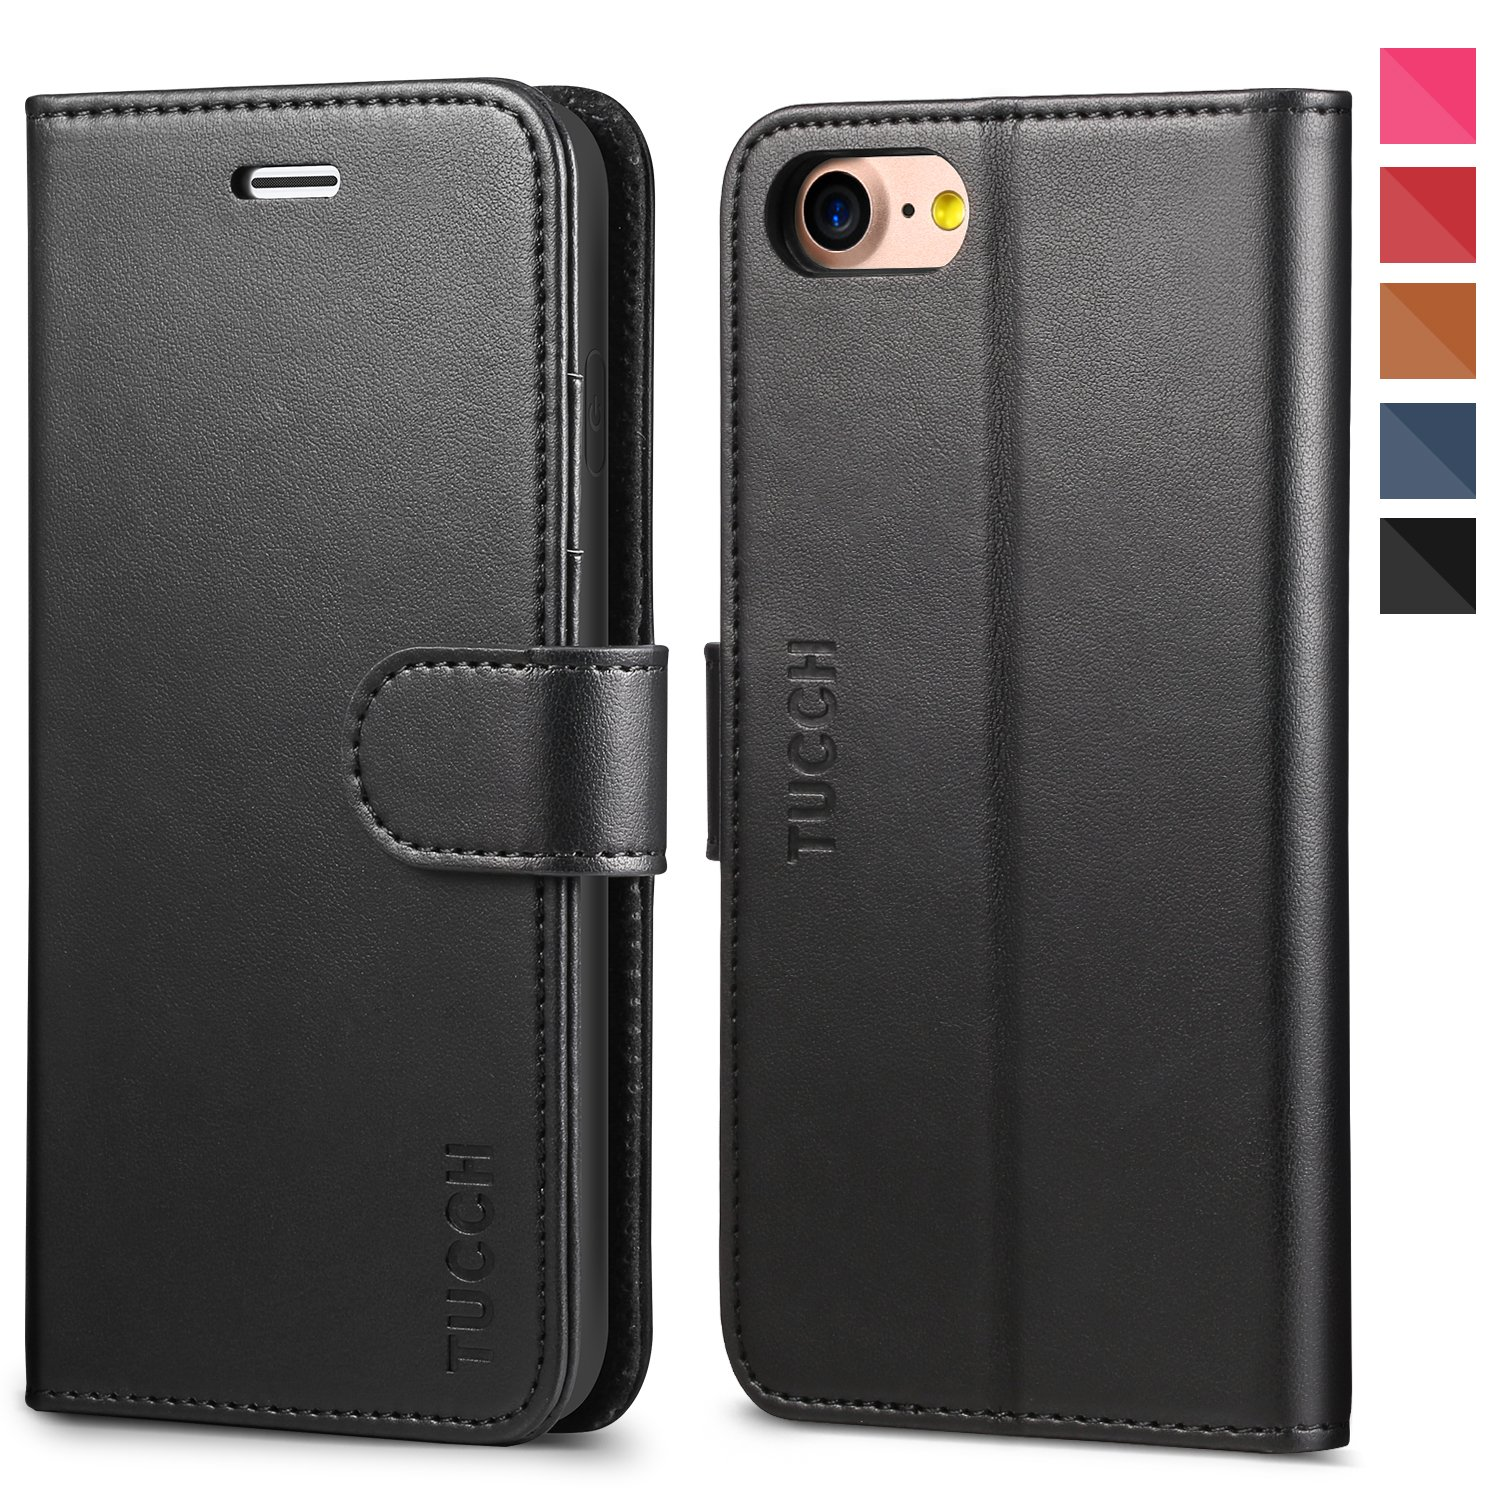 iPhone 8 Case, iPhone 7 Wallet Case, TUCCH Premium PU Leather Flip Folio Wallet Case with Card Slot, Kickstand, Book Design, Magnetic Closure [TPU Interior Case] Compatible with iPhone 8/7, Black by TUCCH